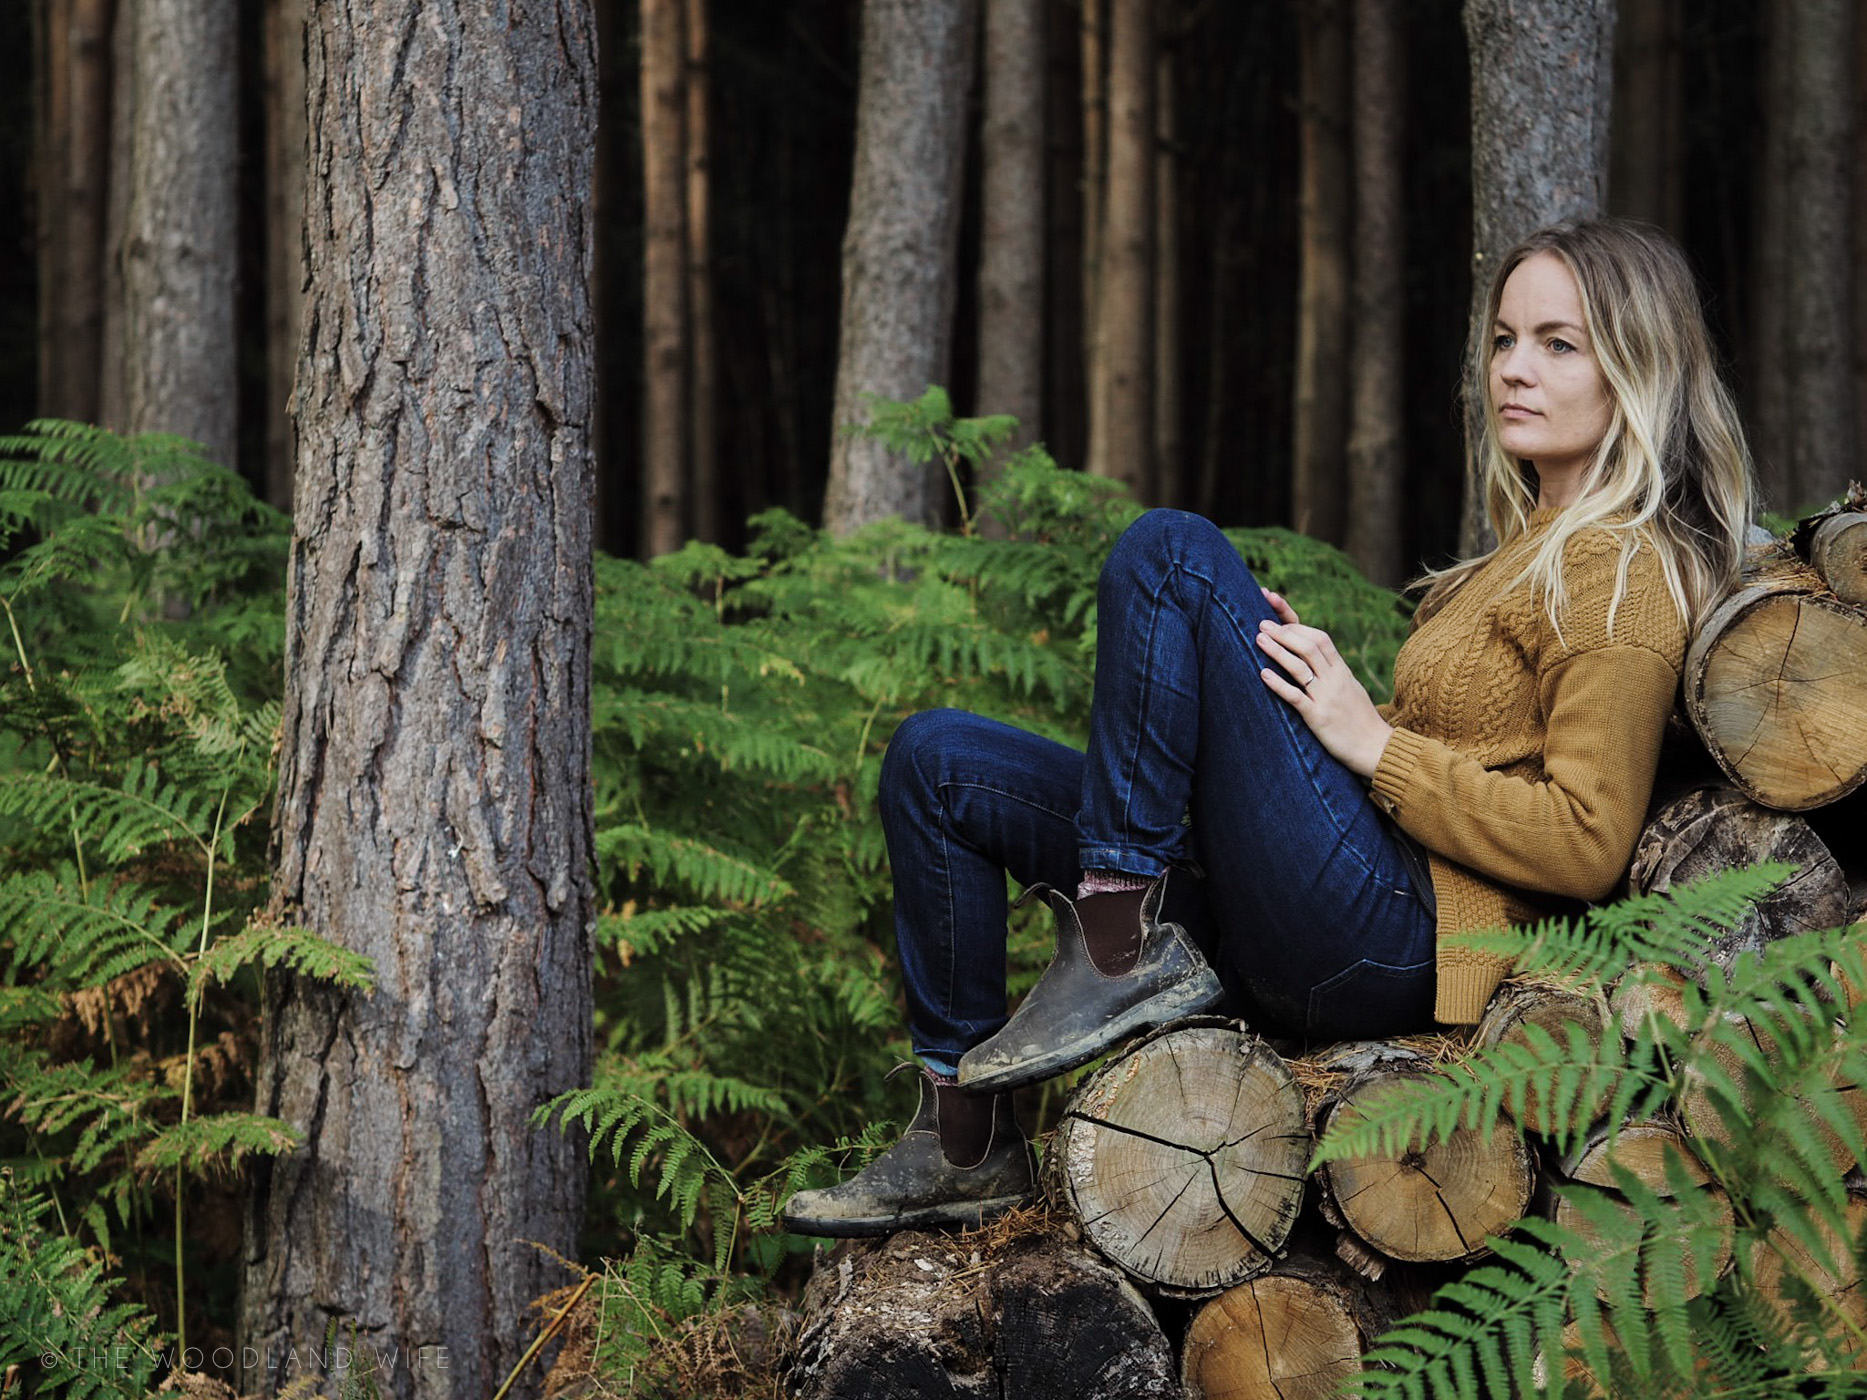 The Woodland Wife - Thought Clothing - Ethical - AW17 - Mustard Cable Knit Jumper and Jeans